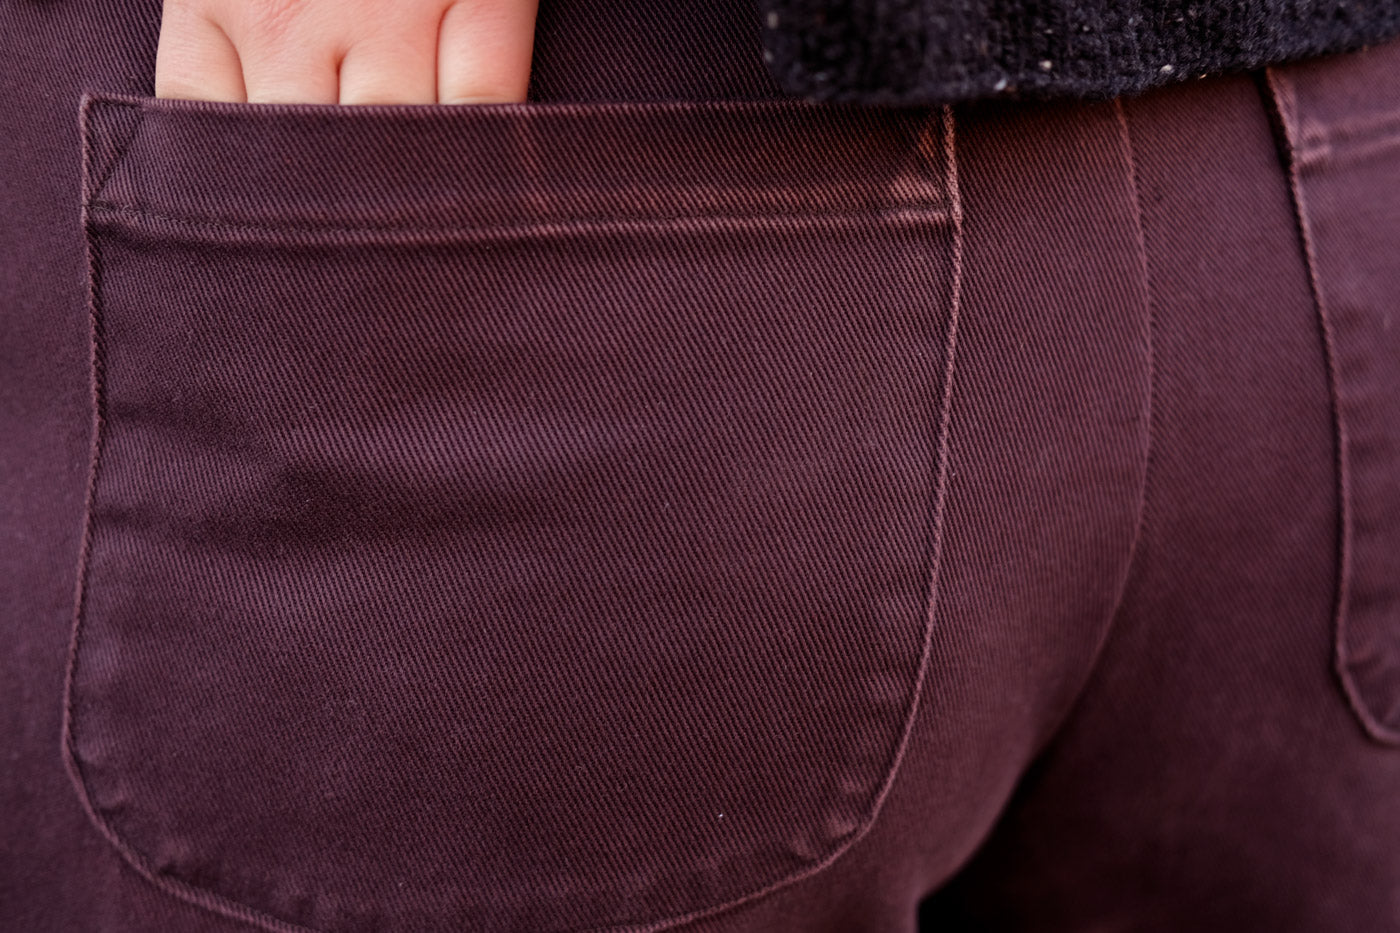 Back Pocket Detail on Jenny Trousers by Closet Case Patterns